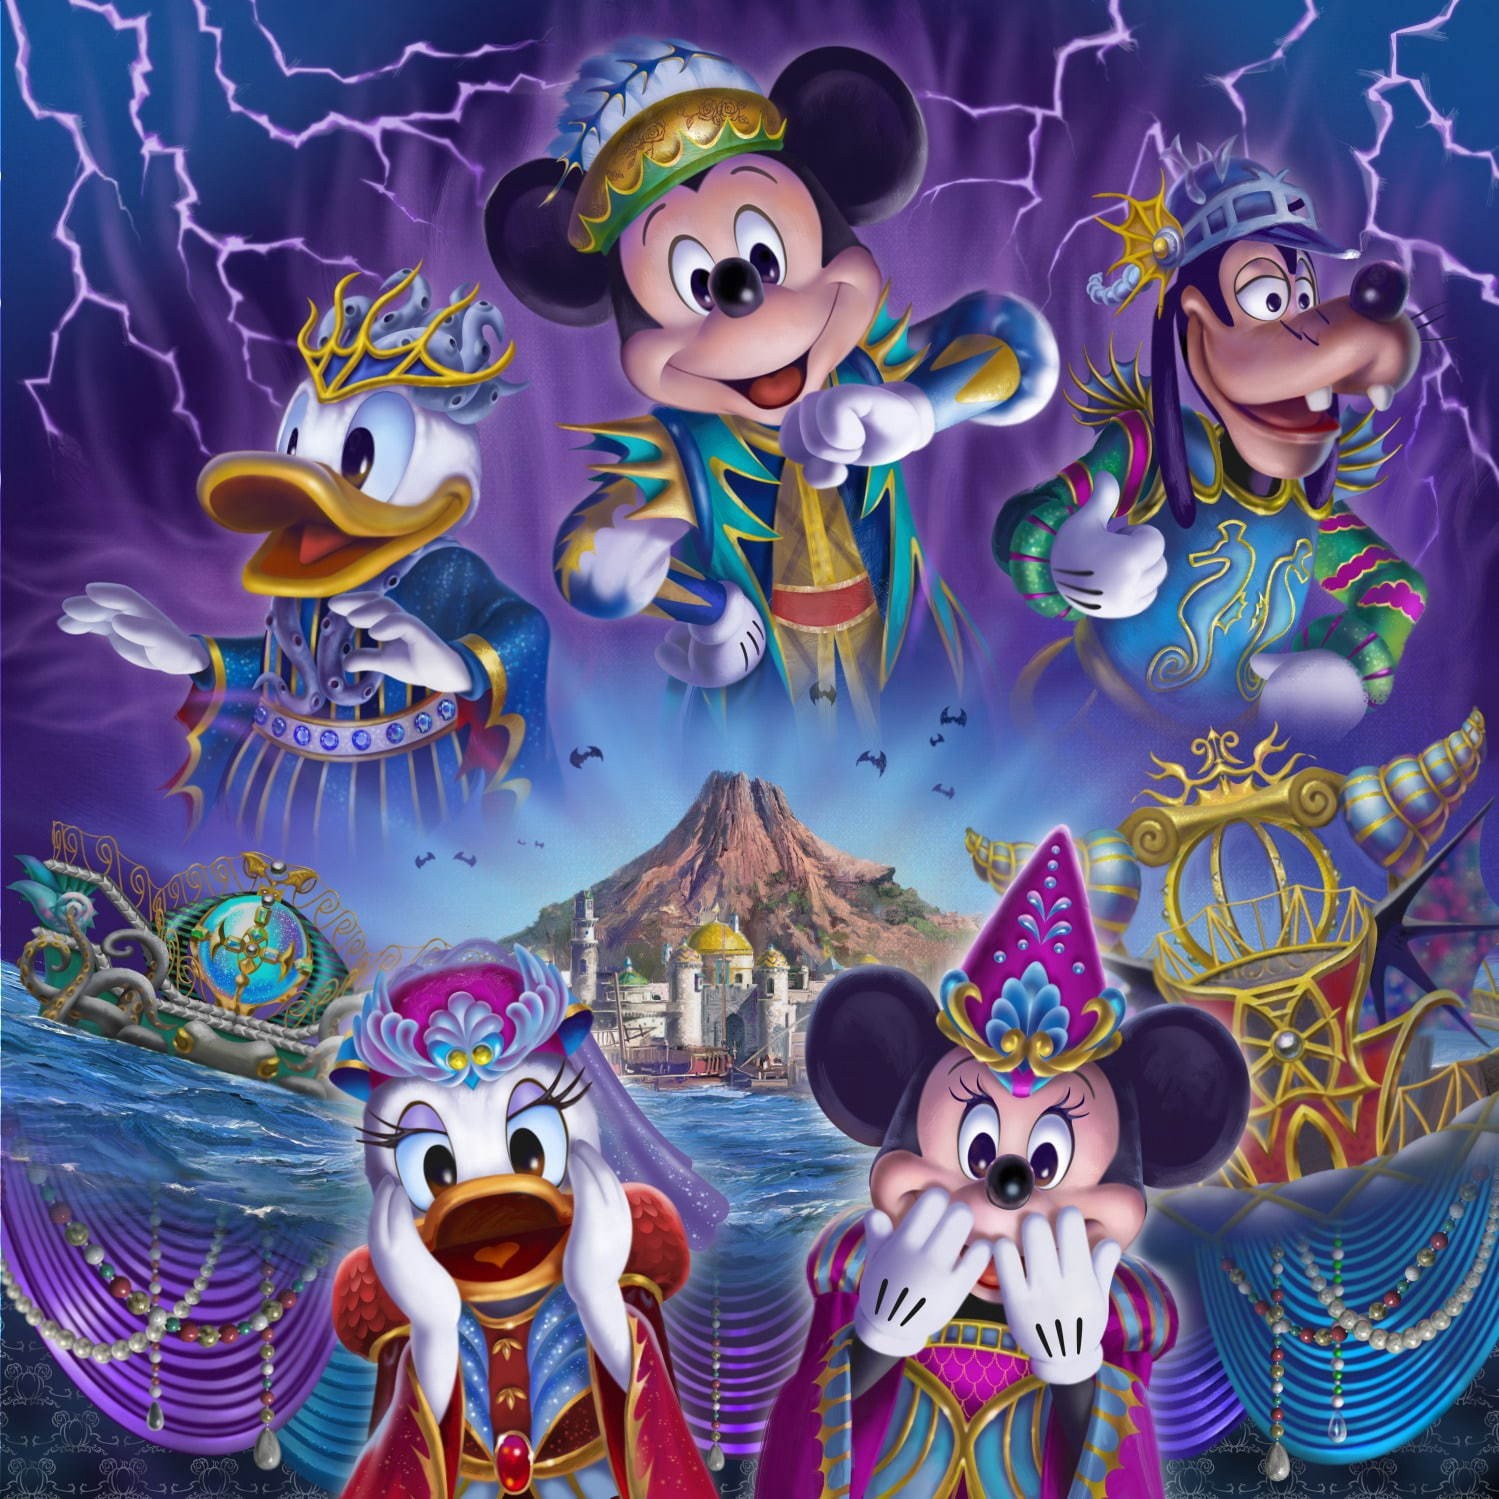 Jp Halloween 2020 Disney Halloween 2020 at Tokyo Disney Resort   Japan Web Magazine